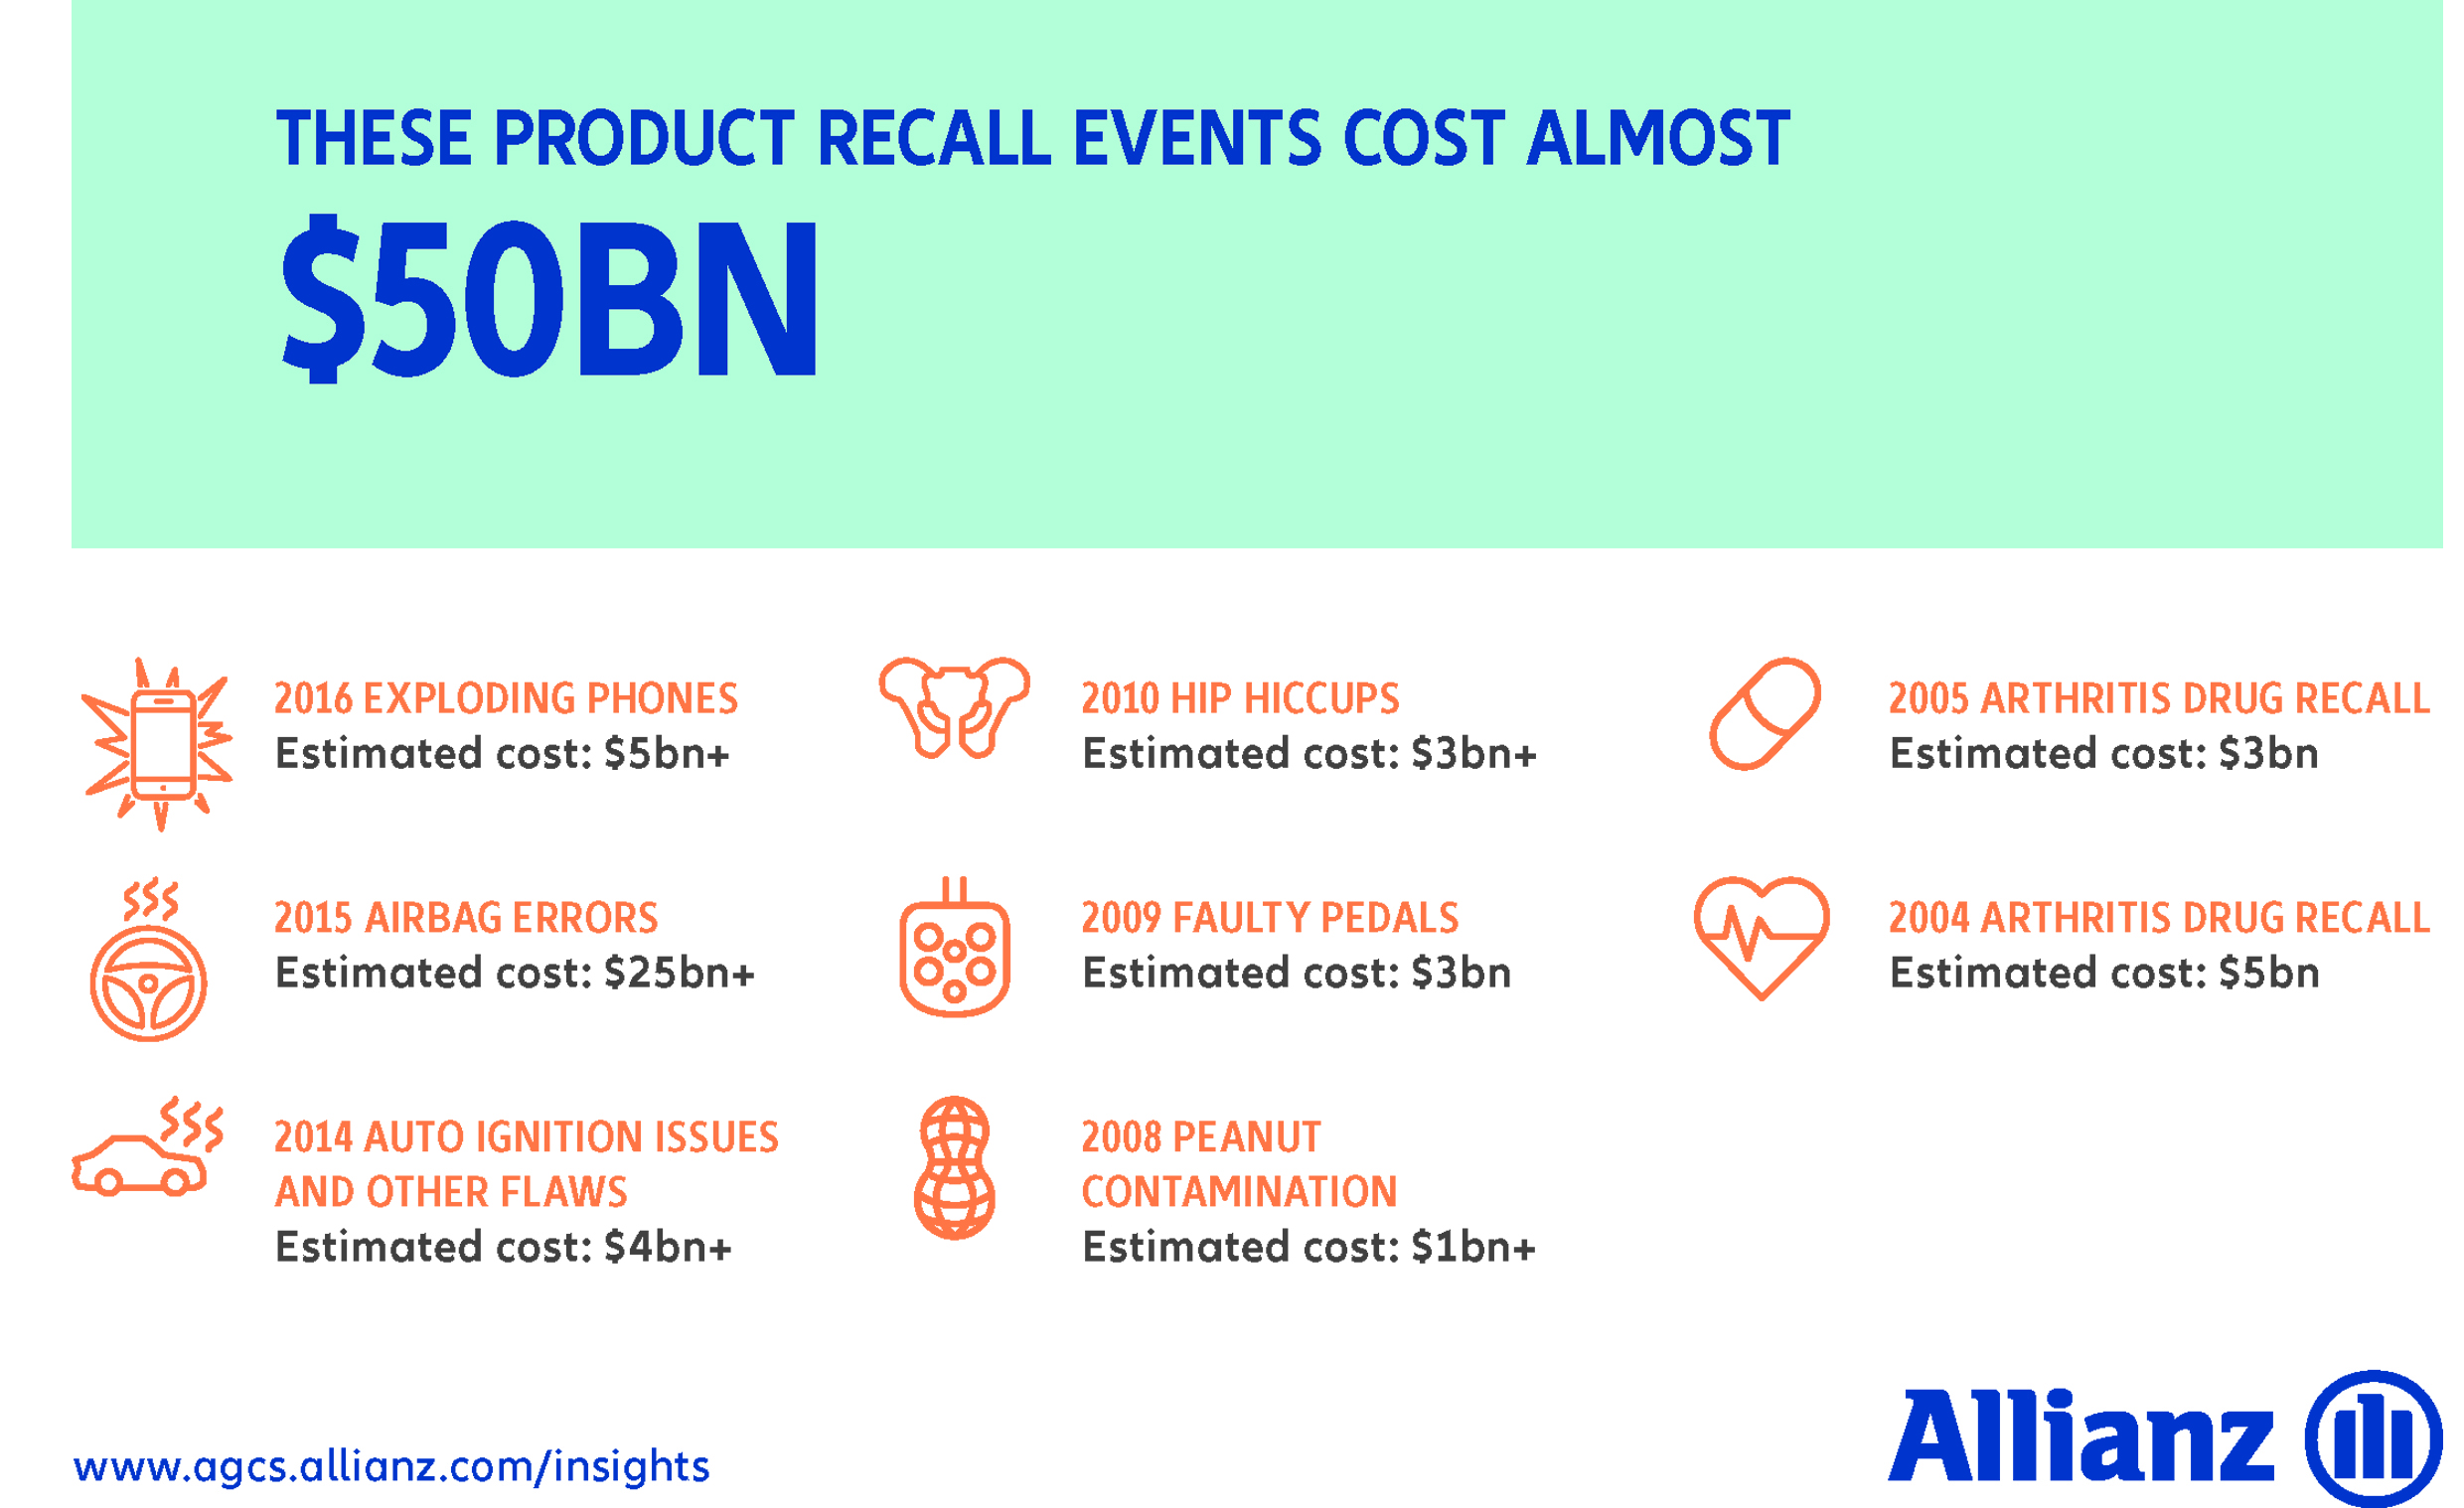 Allianz chart showing the cost of product recalls